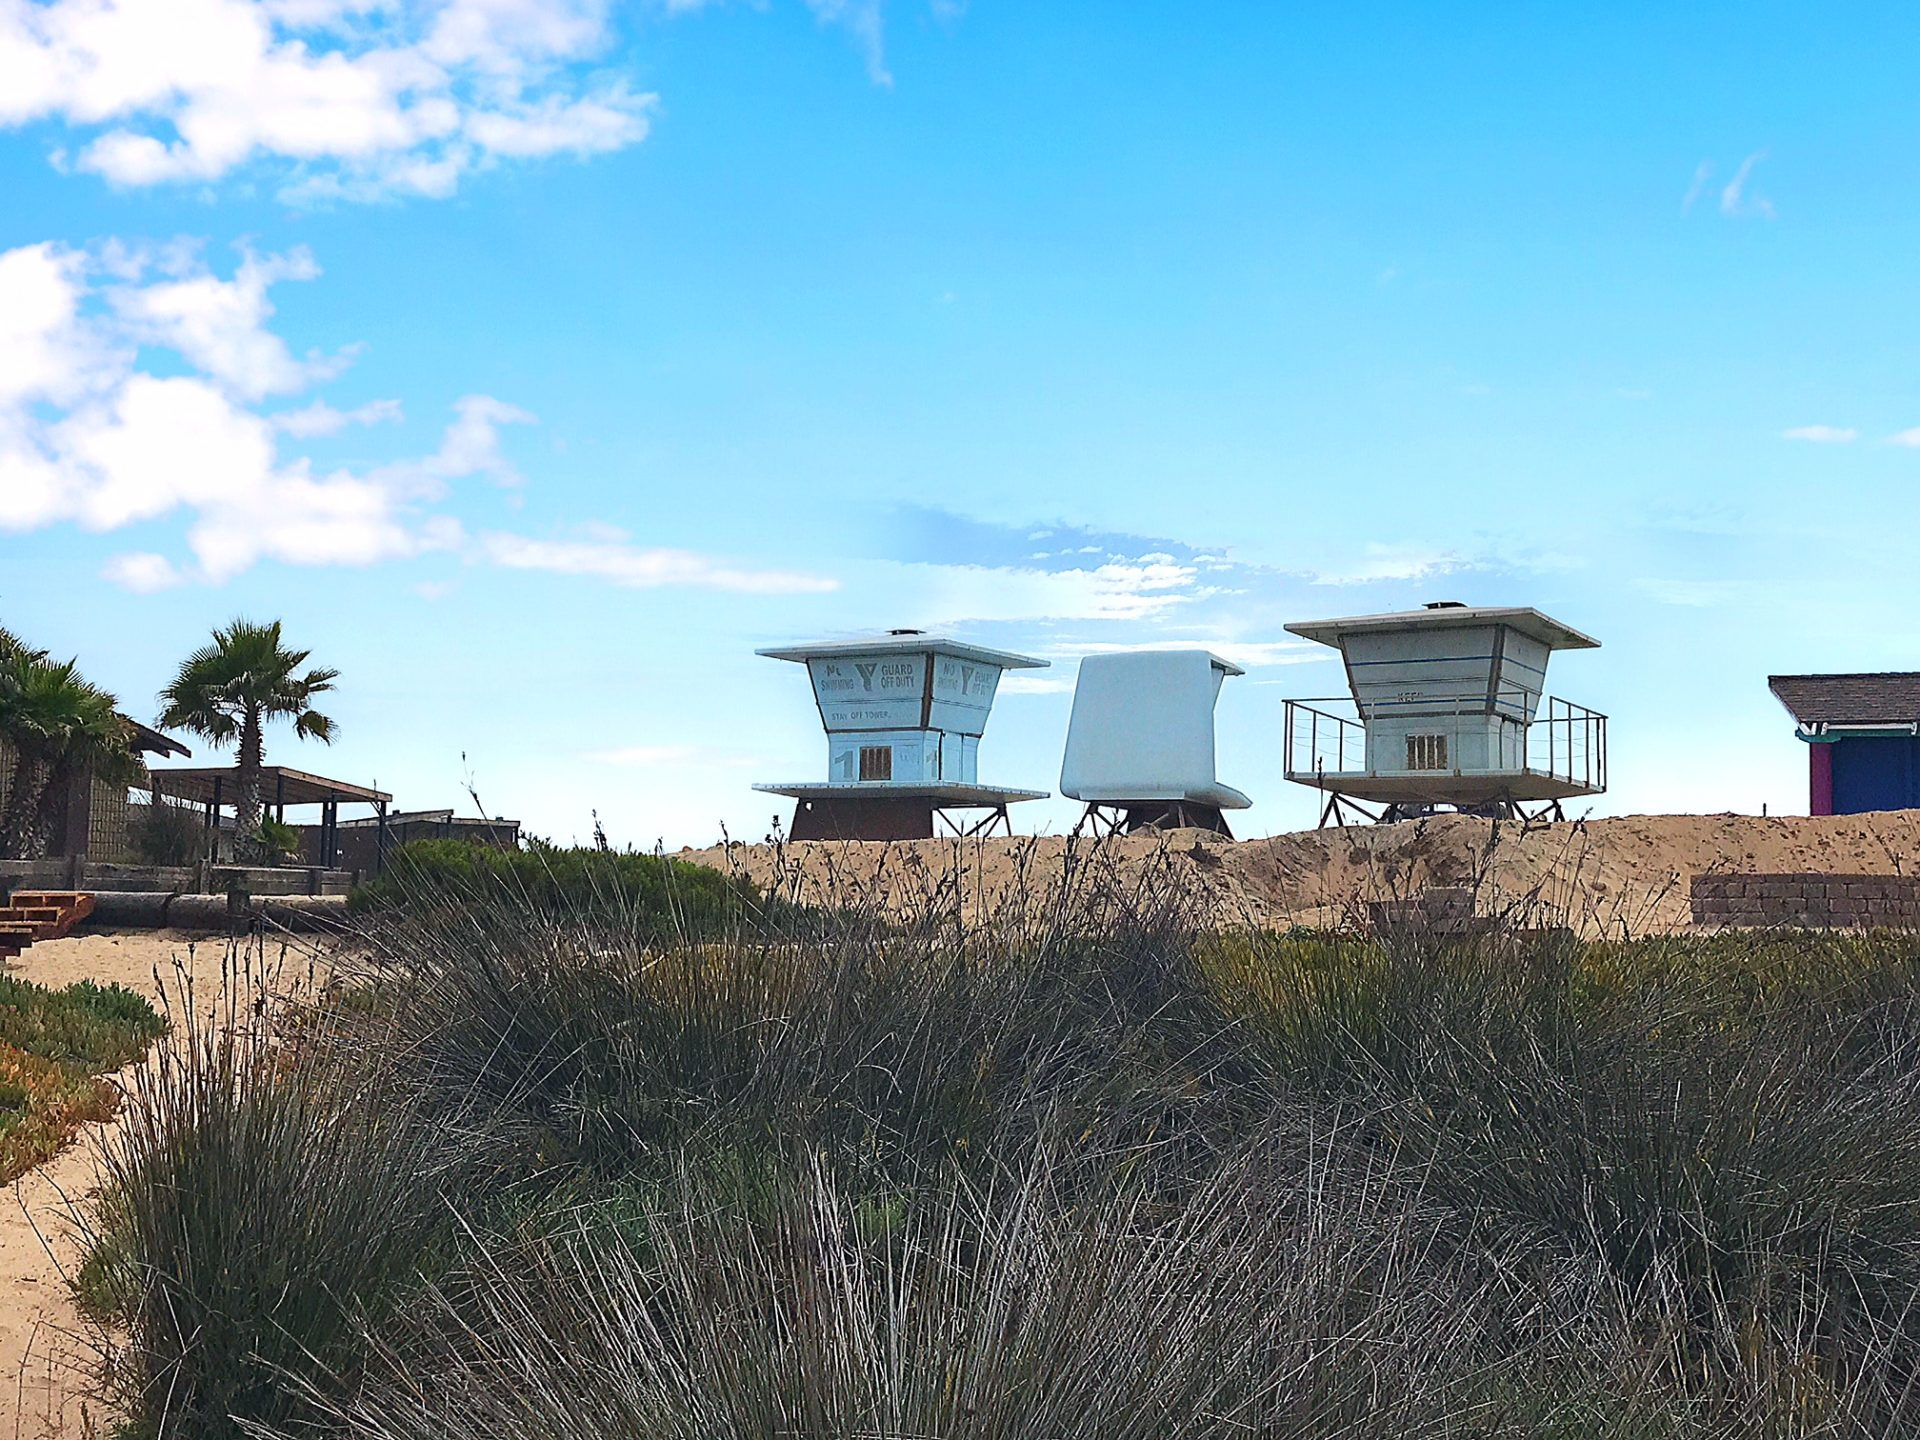 lifeguard towers in Imperial Beach